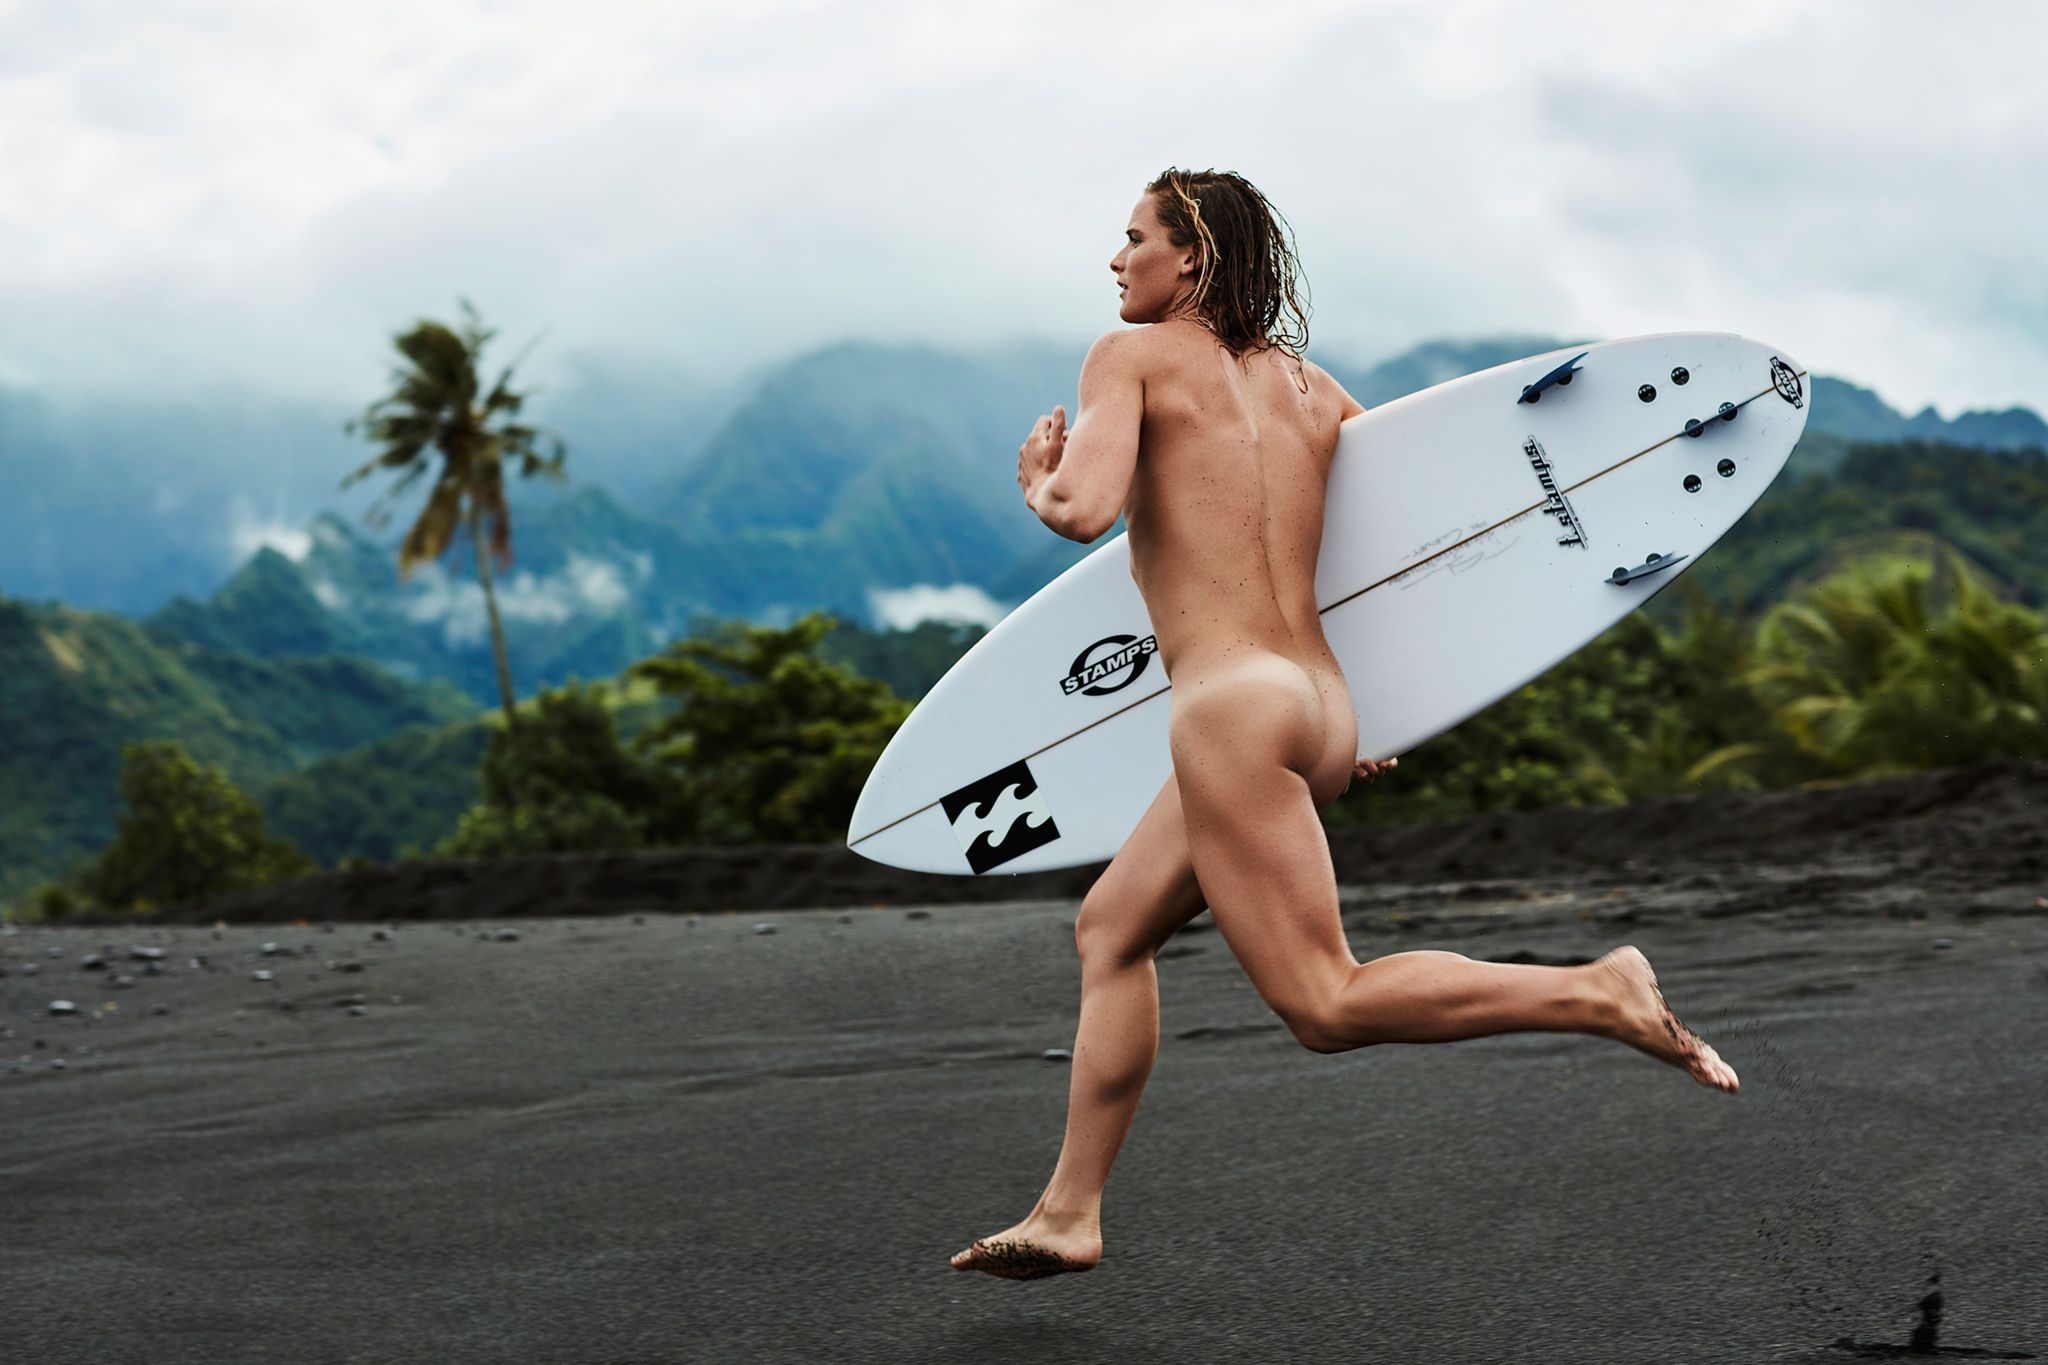 Nude outdoor sports